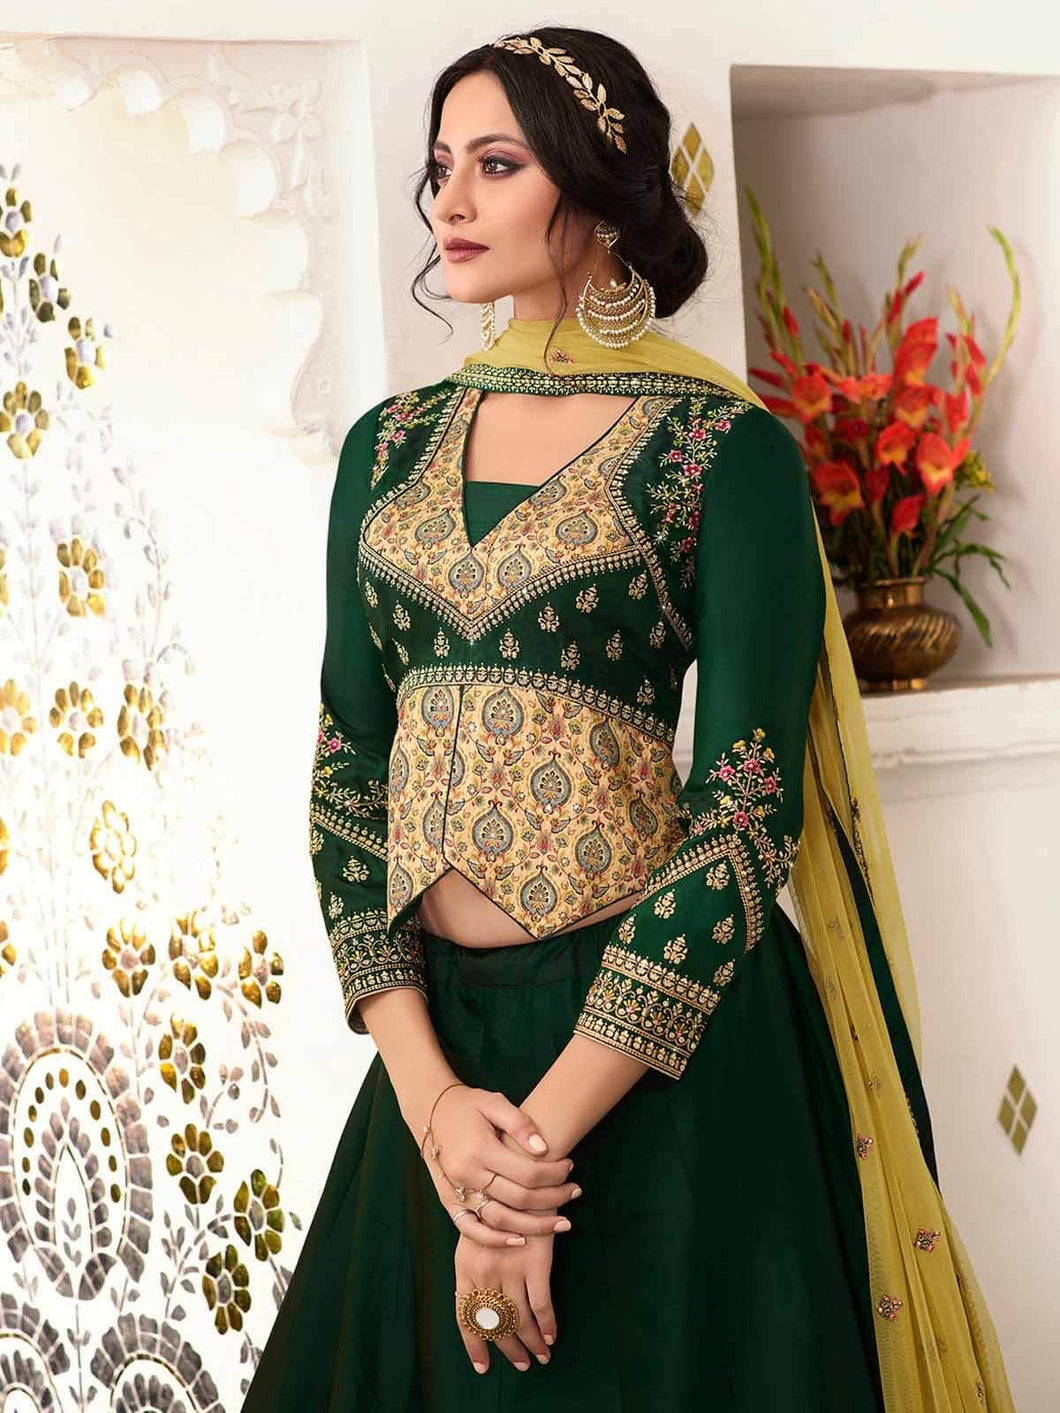 Green Semi-Stitched Zari Embrpidered Lehenga Choli Set